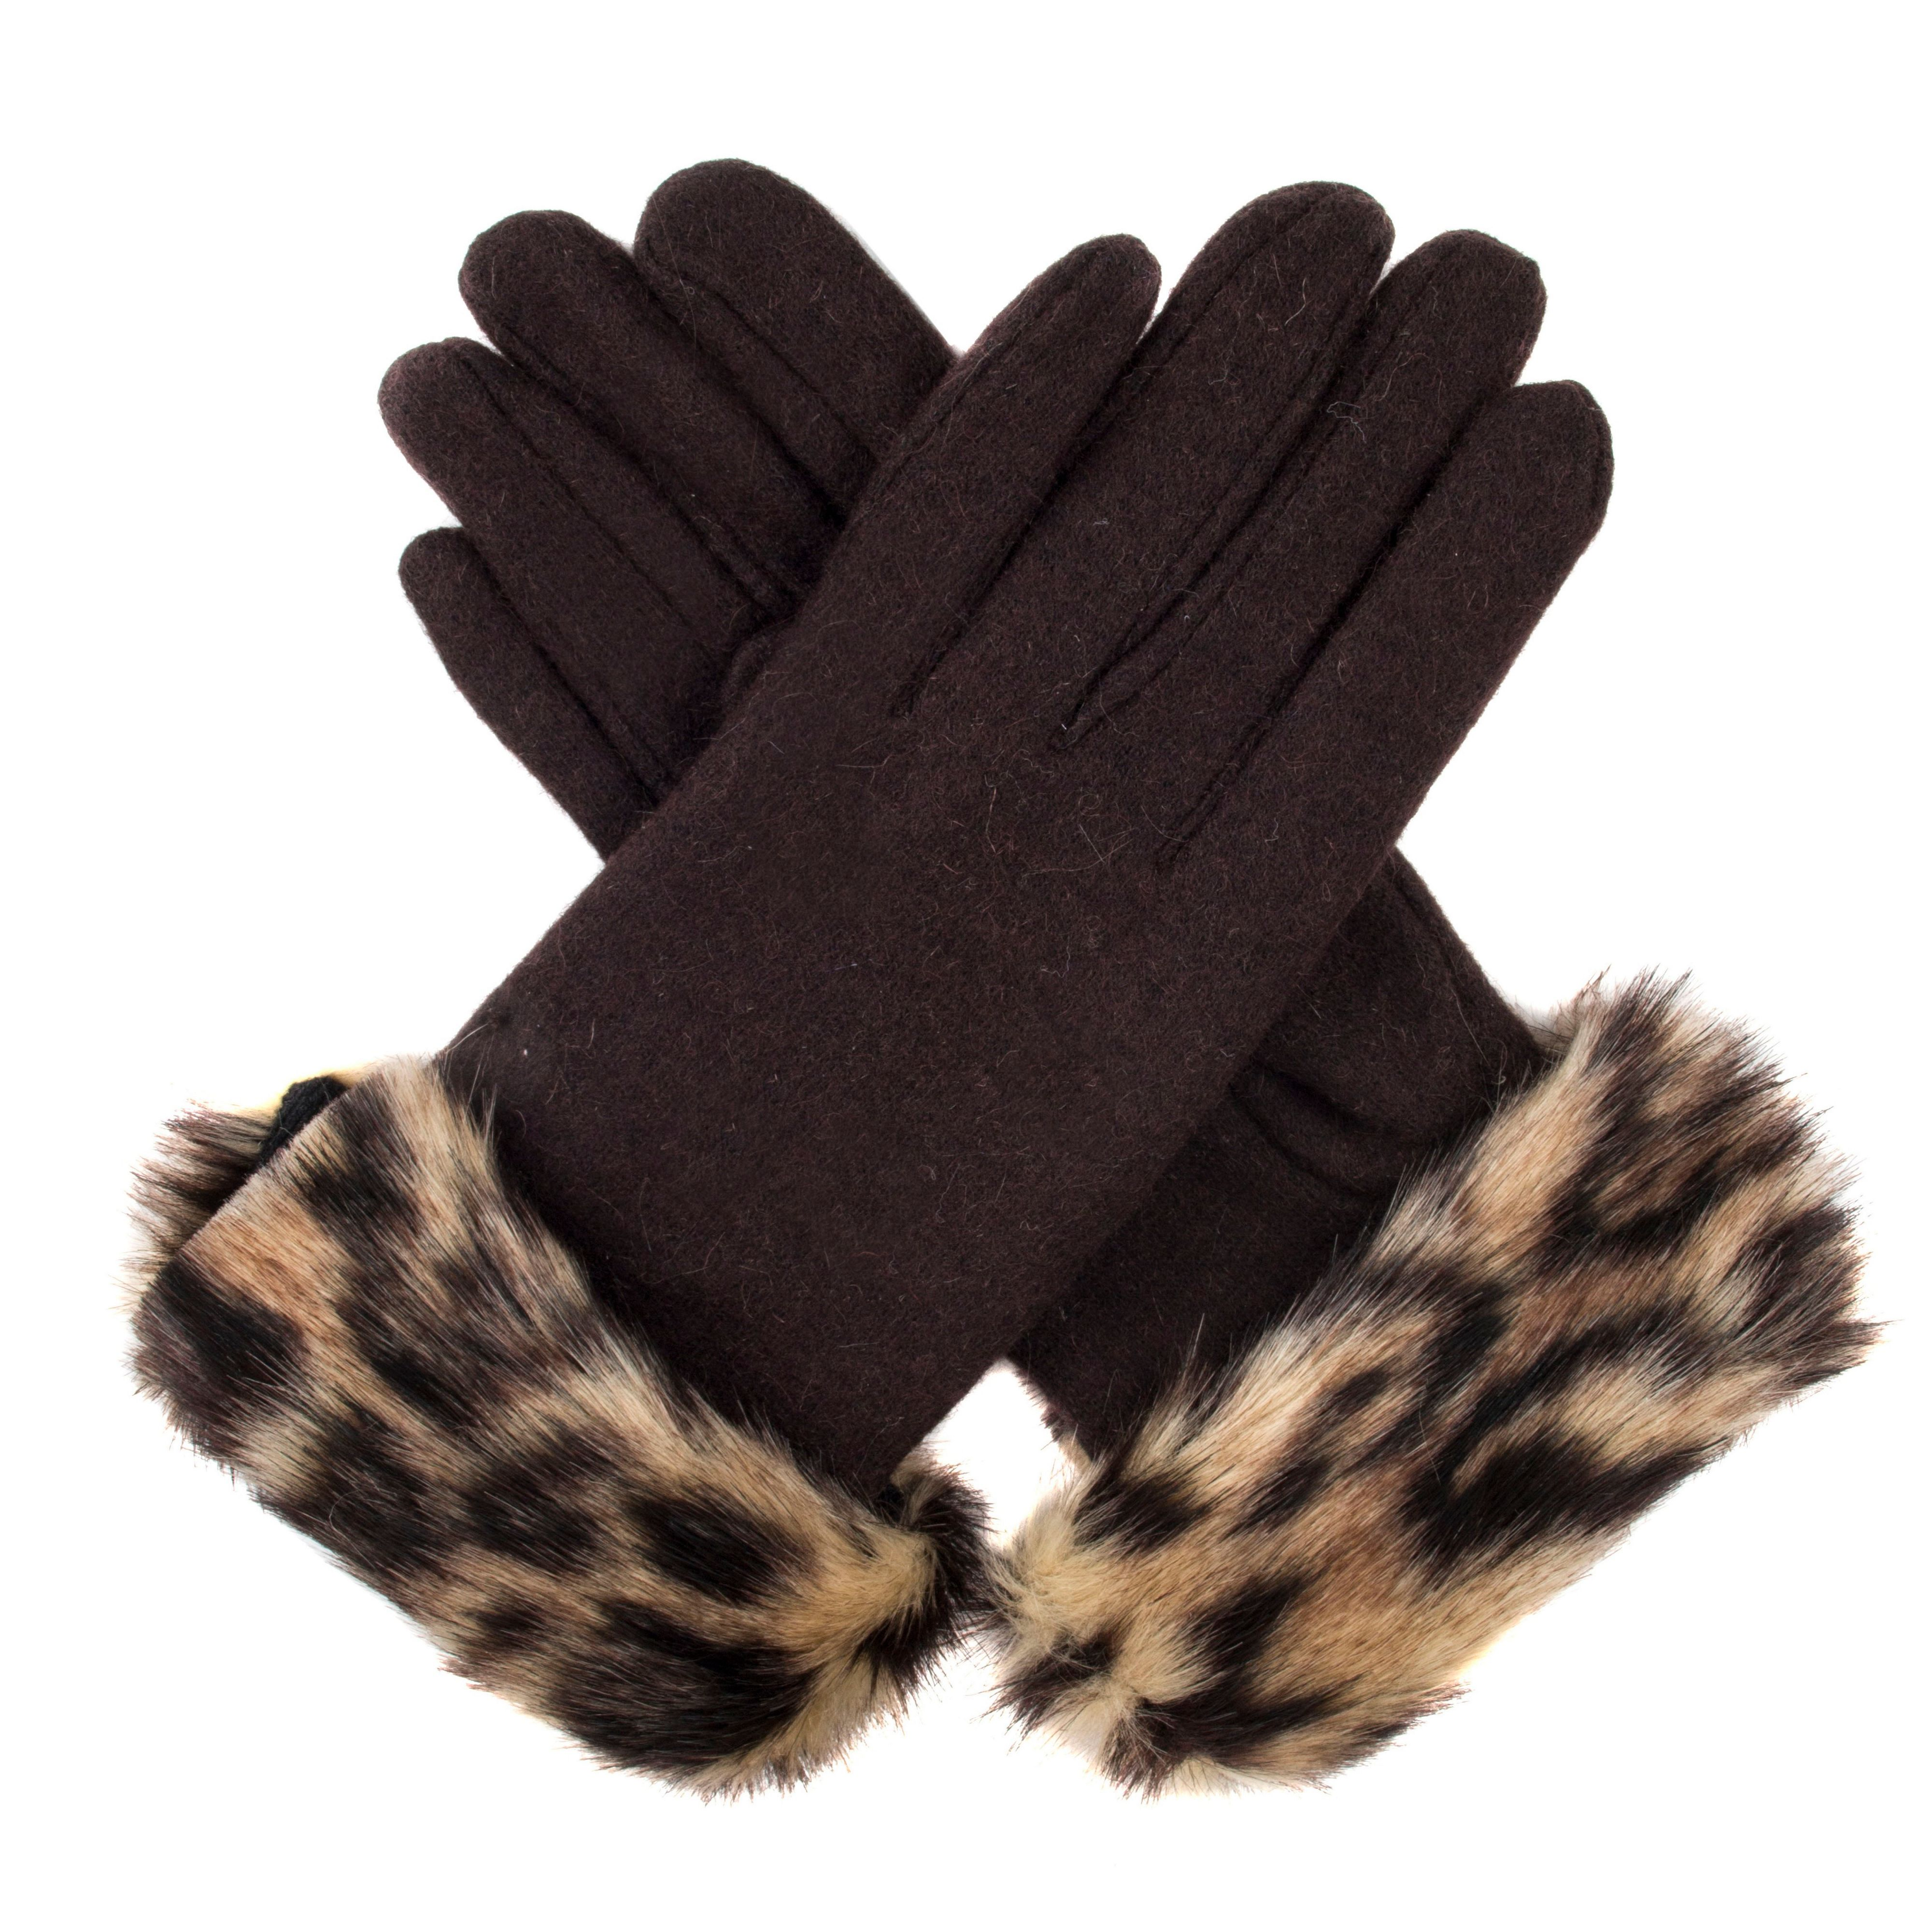 Vintage Style Gloves Dents Womens gloves with faux fur cuff Chocolate £12.80 AT vintagedancer.com